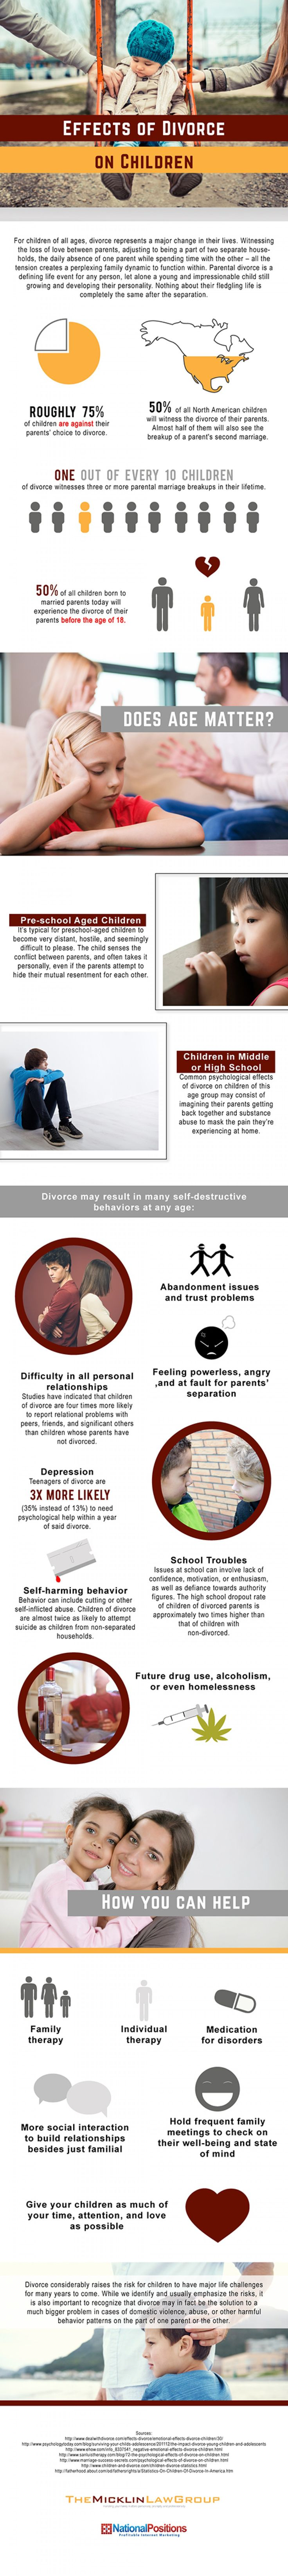 Effects of Divorce on Children Infographic